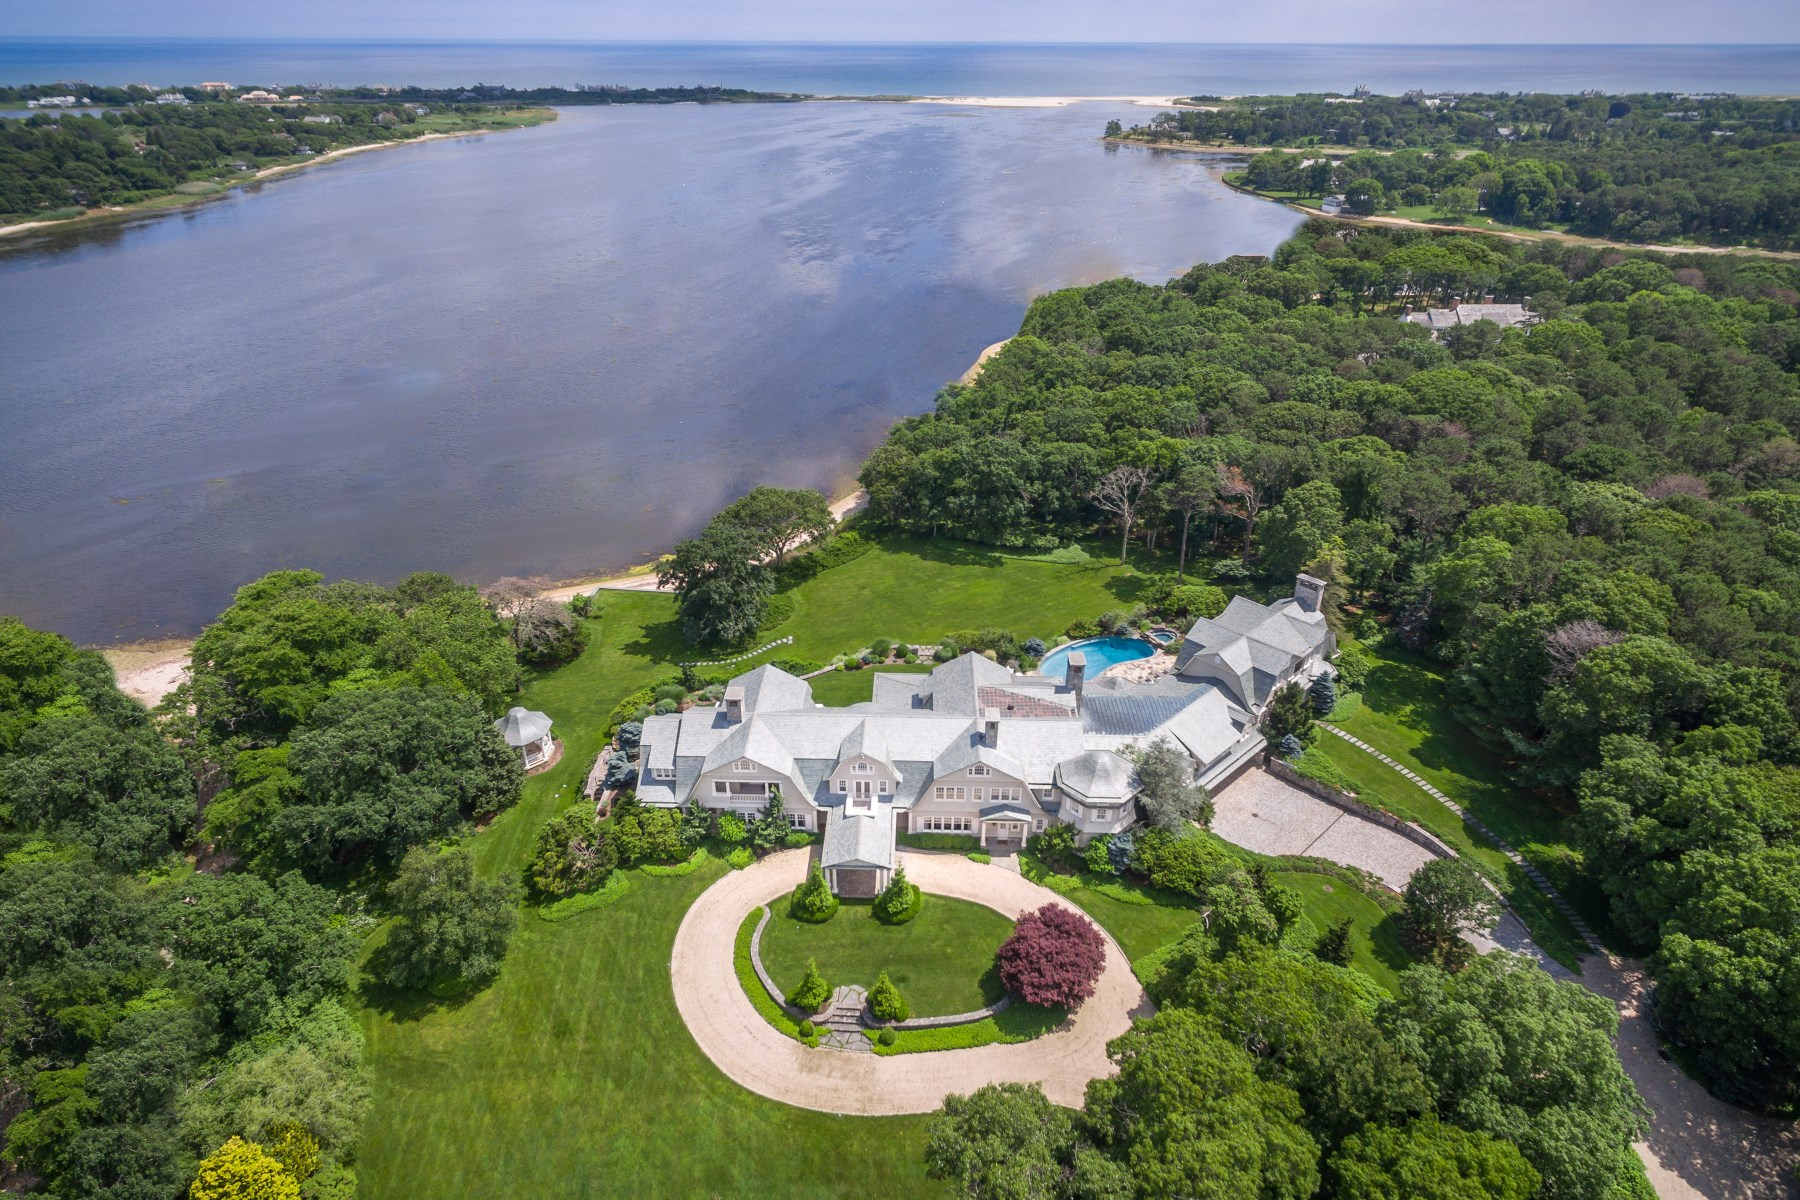 Casa Unifamiliar por un Venta en Burnt Point 38 Mathews Road Wainscott, Nueva York 11975 Estados Unidos